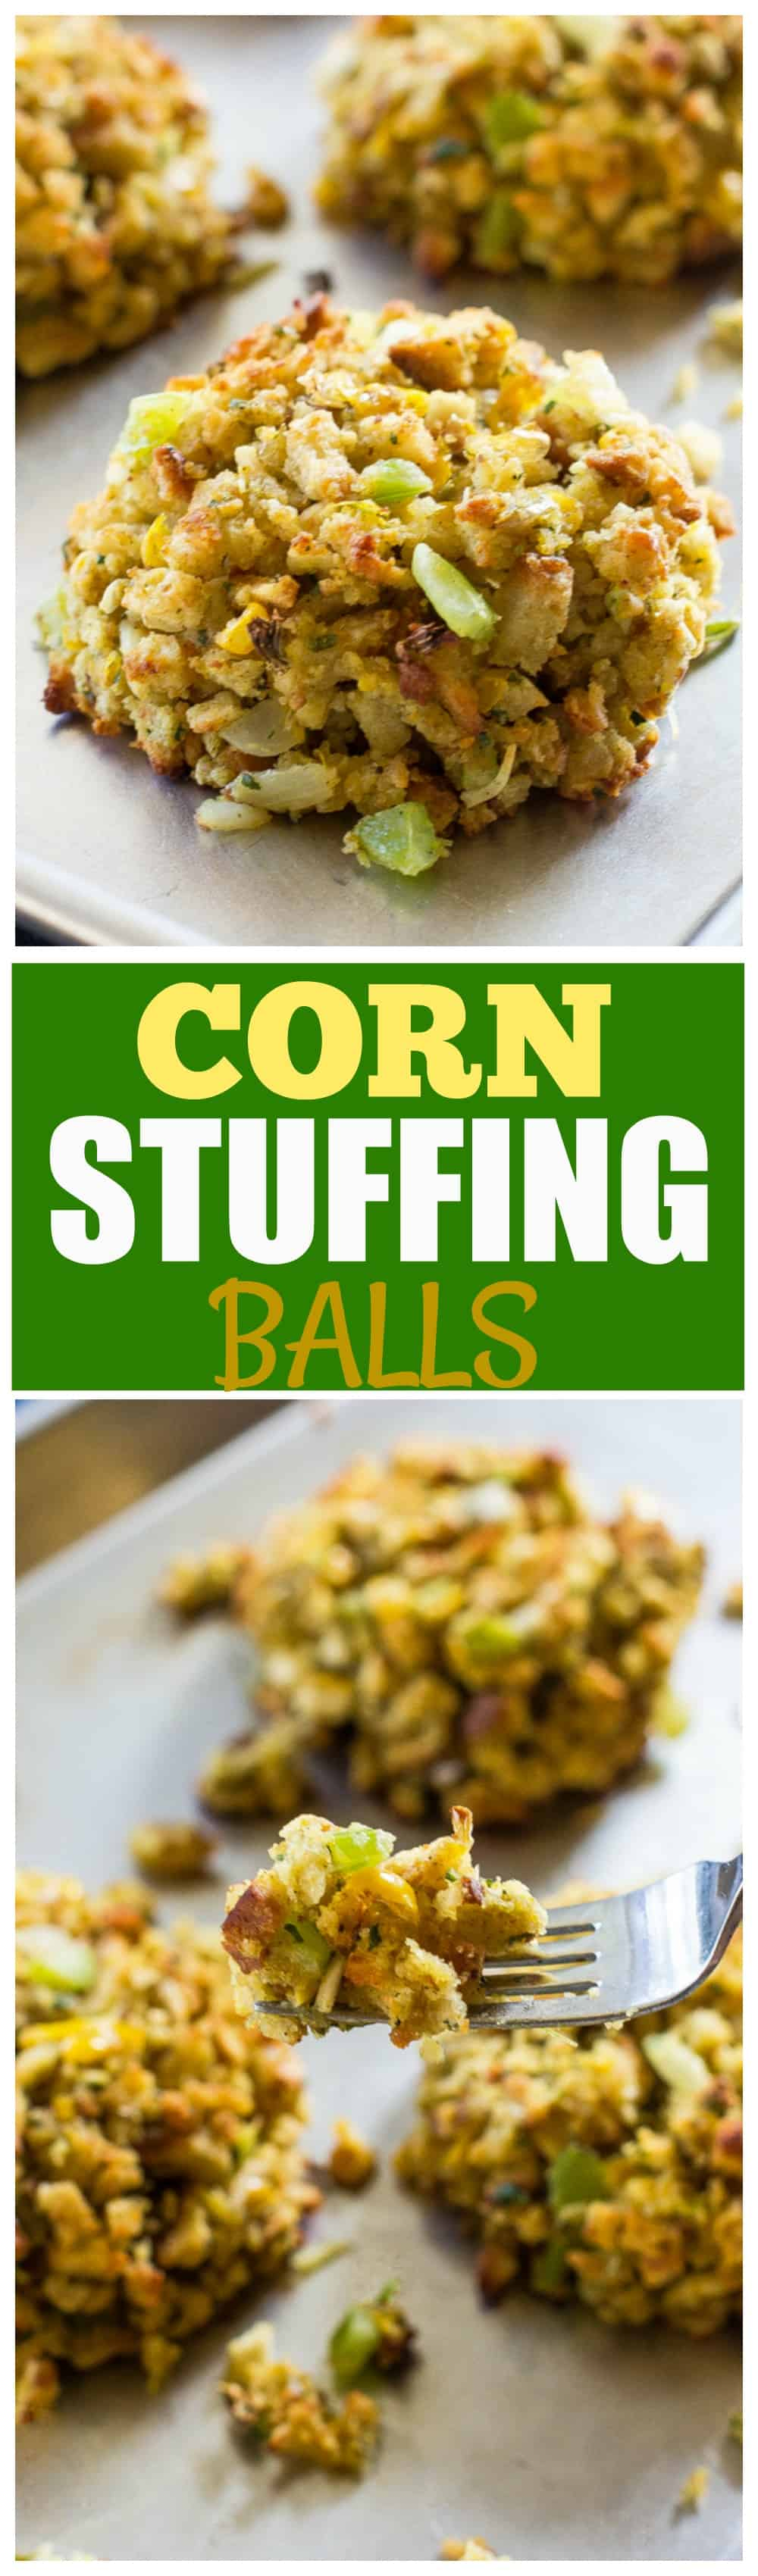 Imagine stuffing in the form of an individually portioned ball. That's what these Corn Stuffing Balls are! #thanksgiving #corn #stuffing #balls